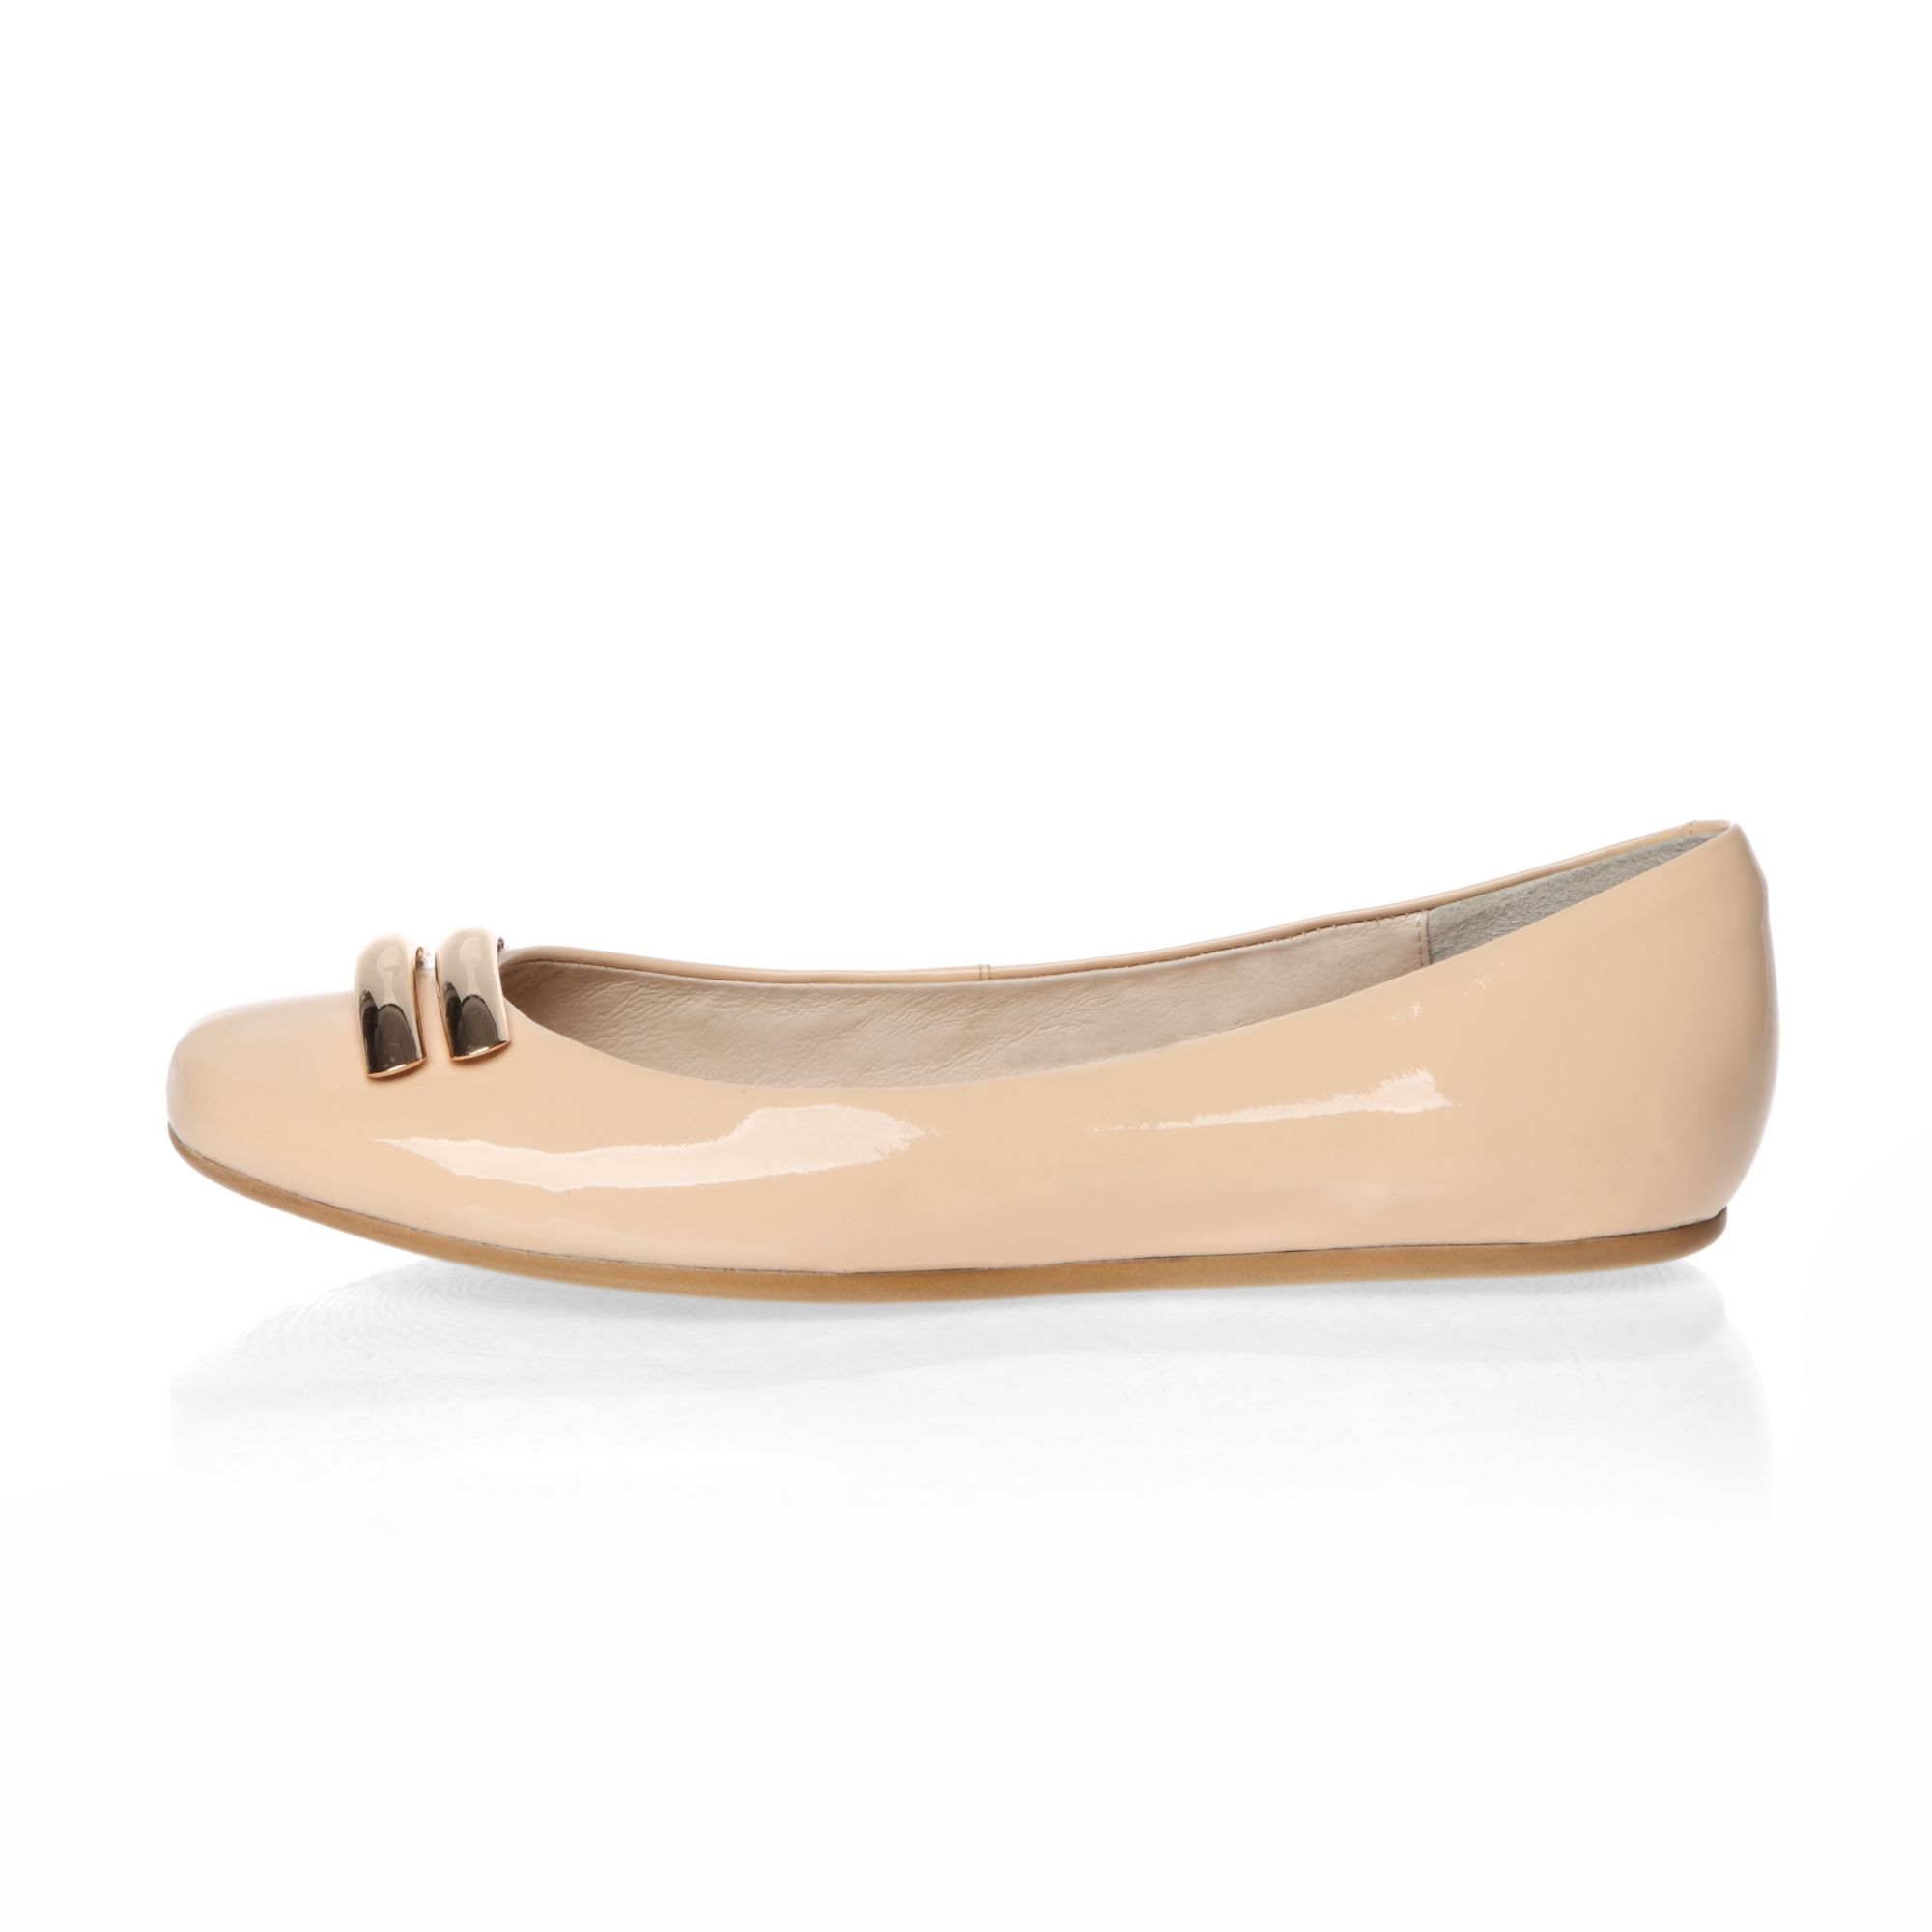 Metal trimed ballerina shoes